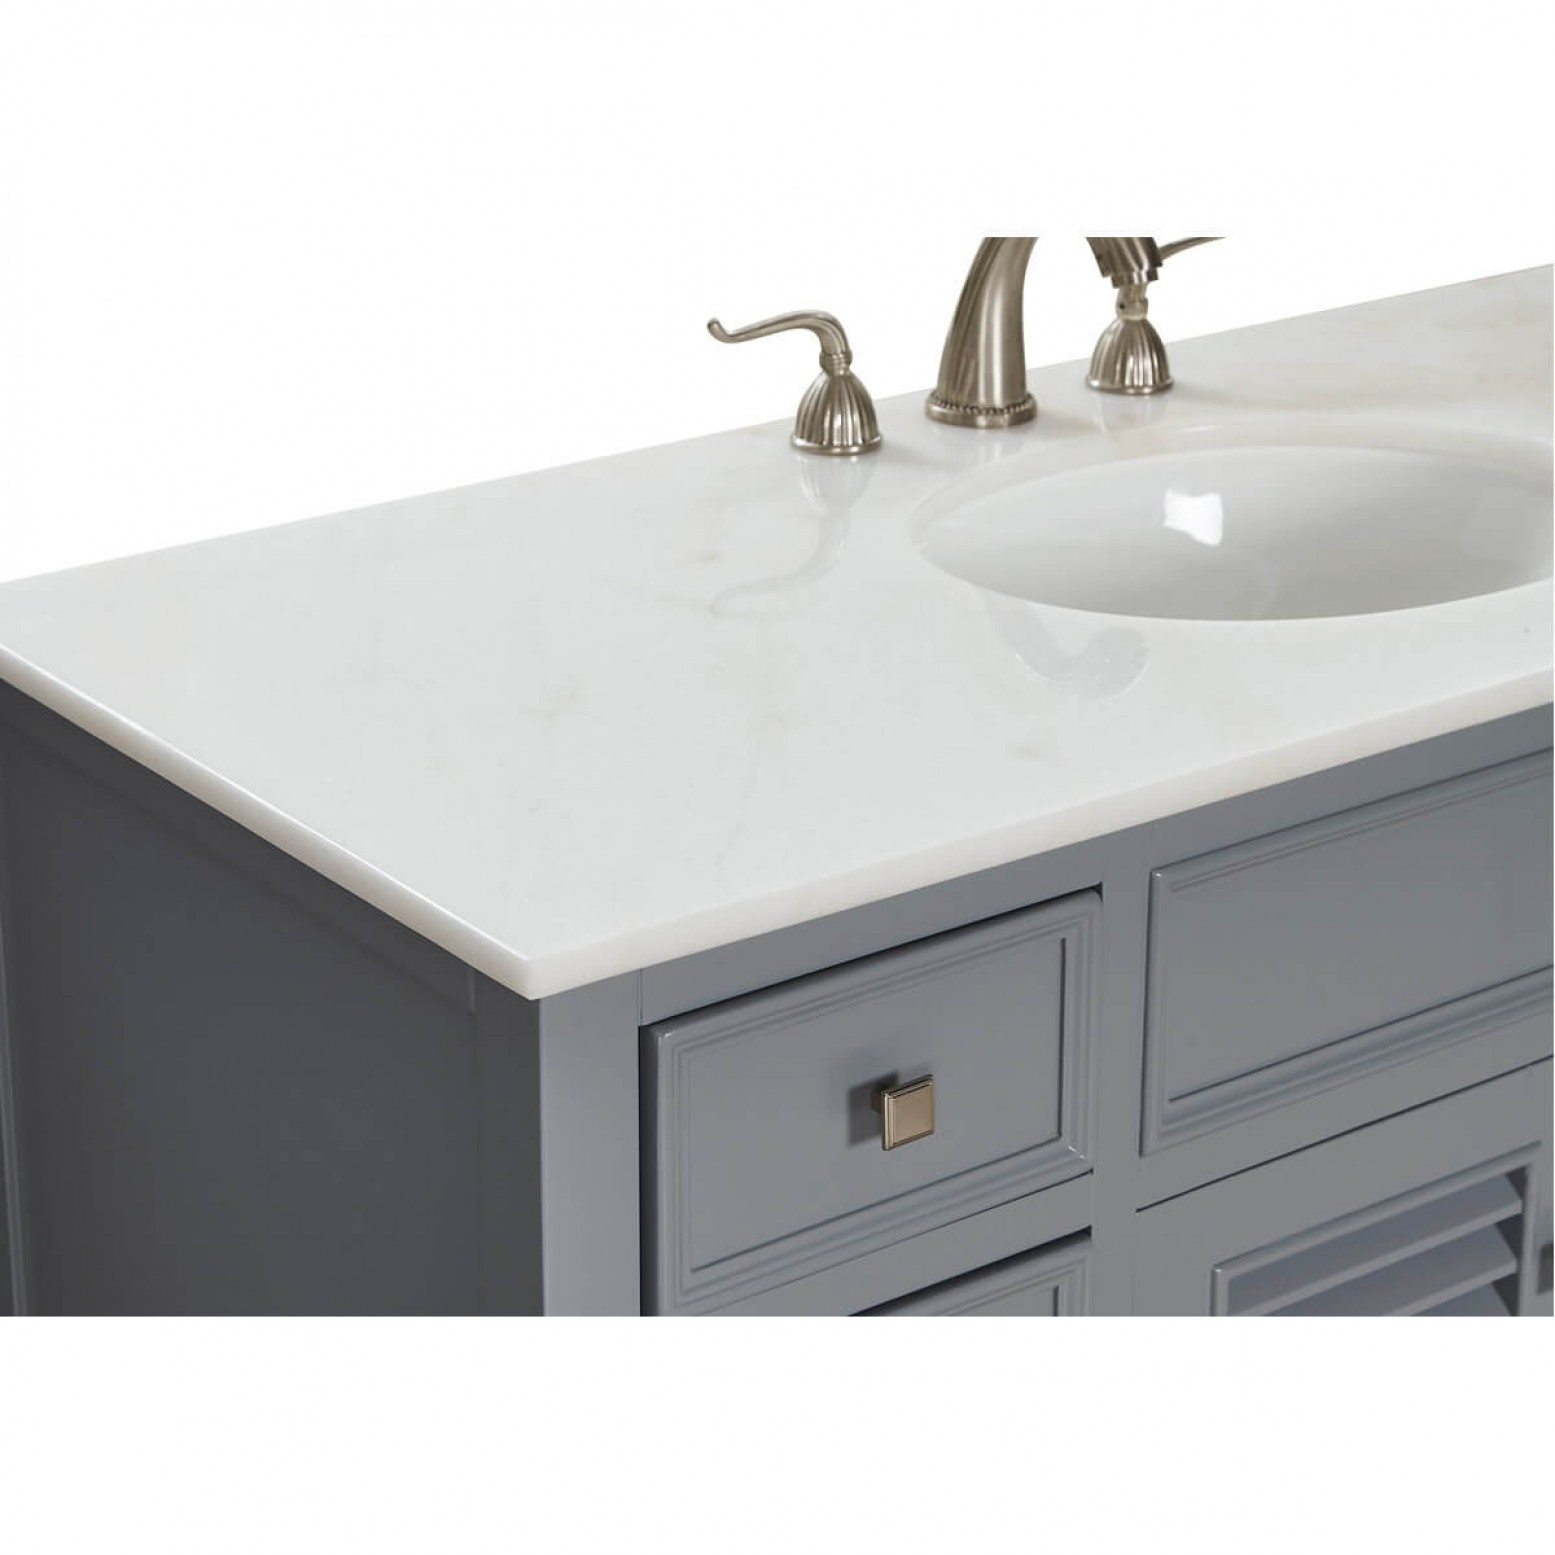 CAPE COD 48 Single Bathroom Vanity Set, Grey by Elegant ...